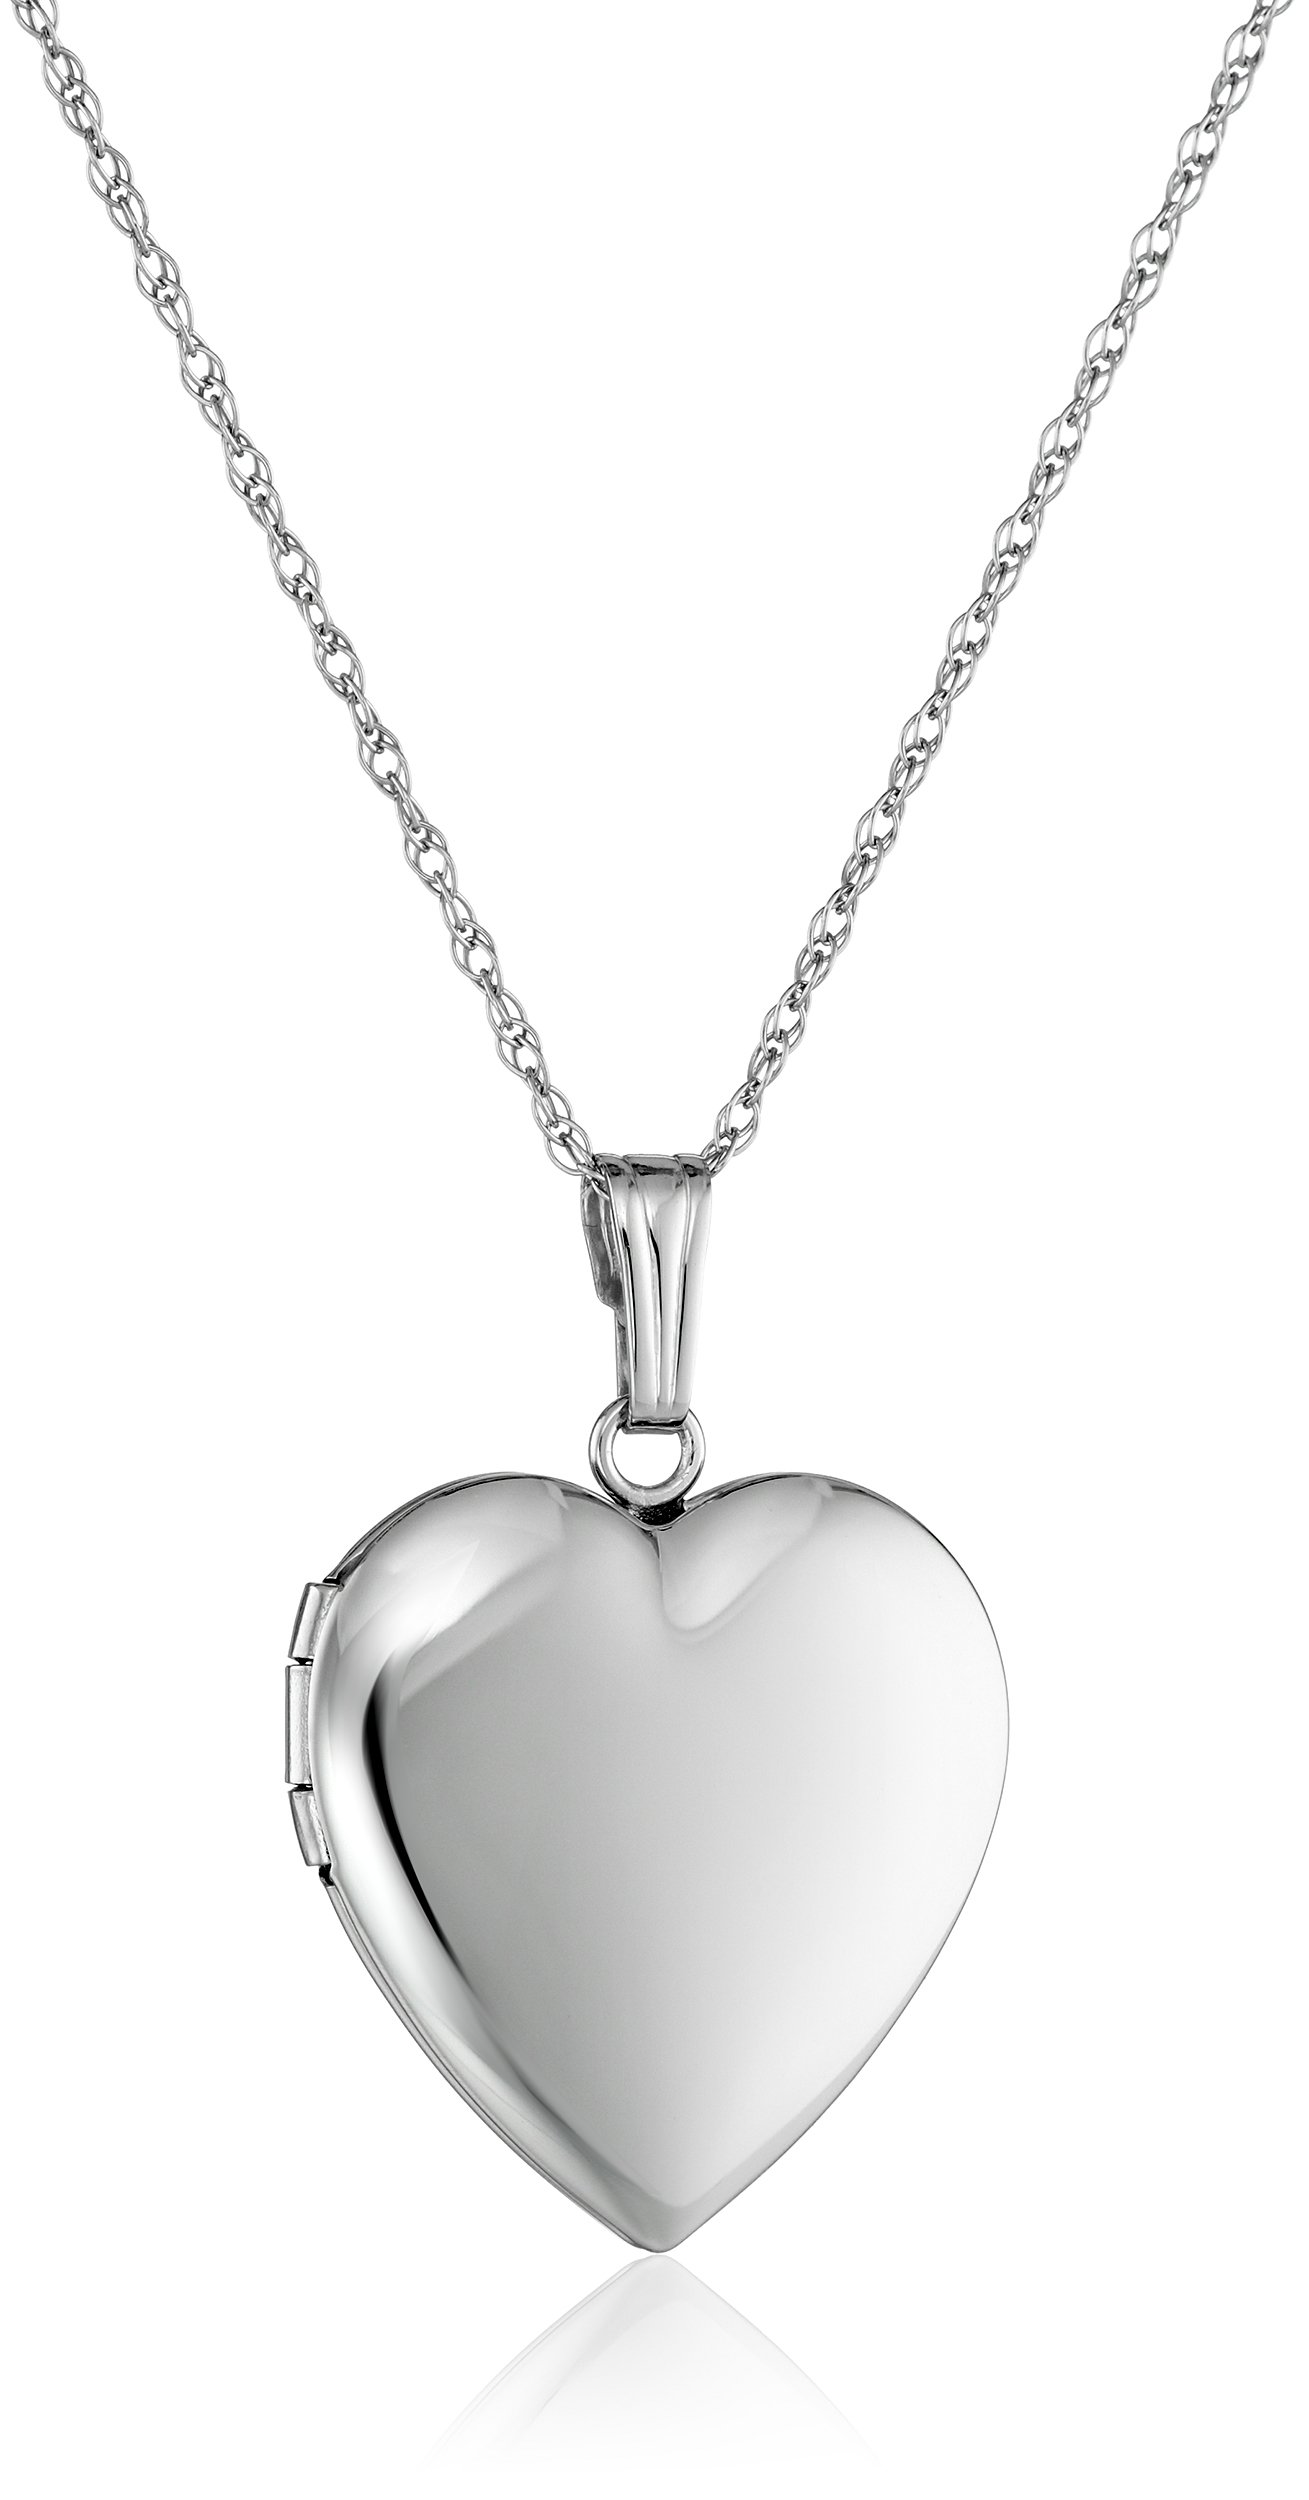 14k White Gold Polished Heart Locket Necklace, 18''